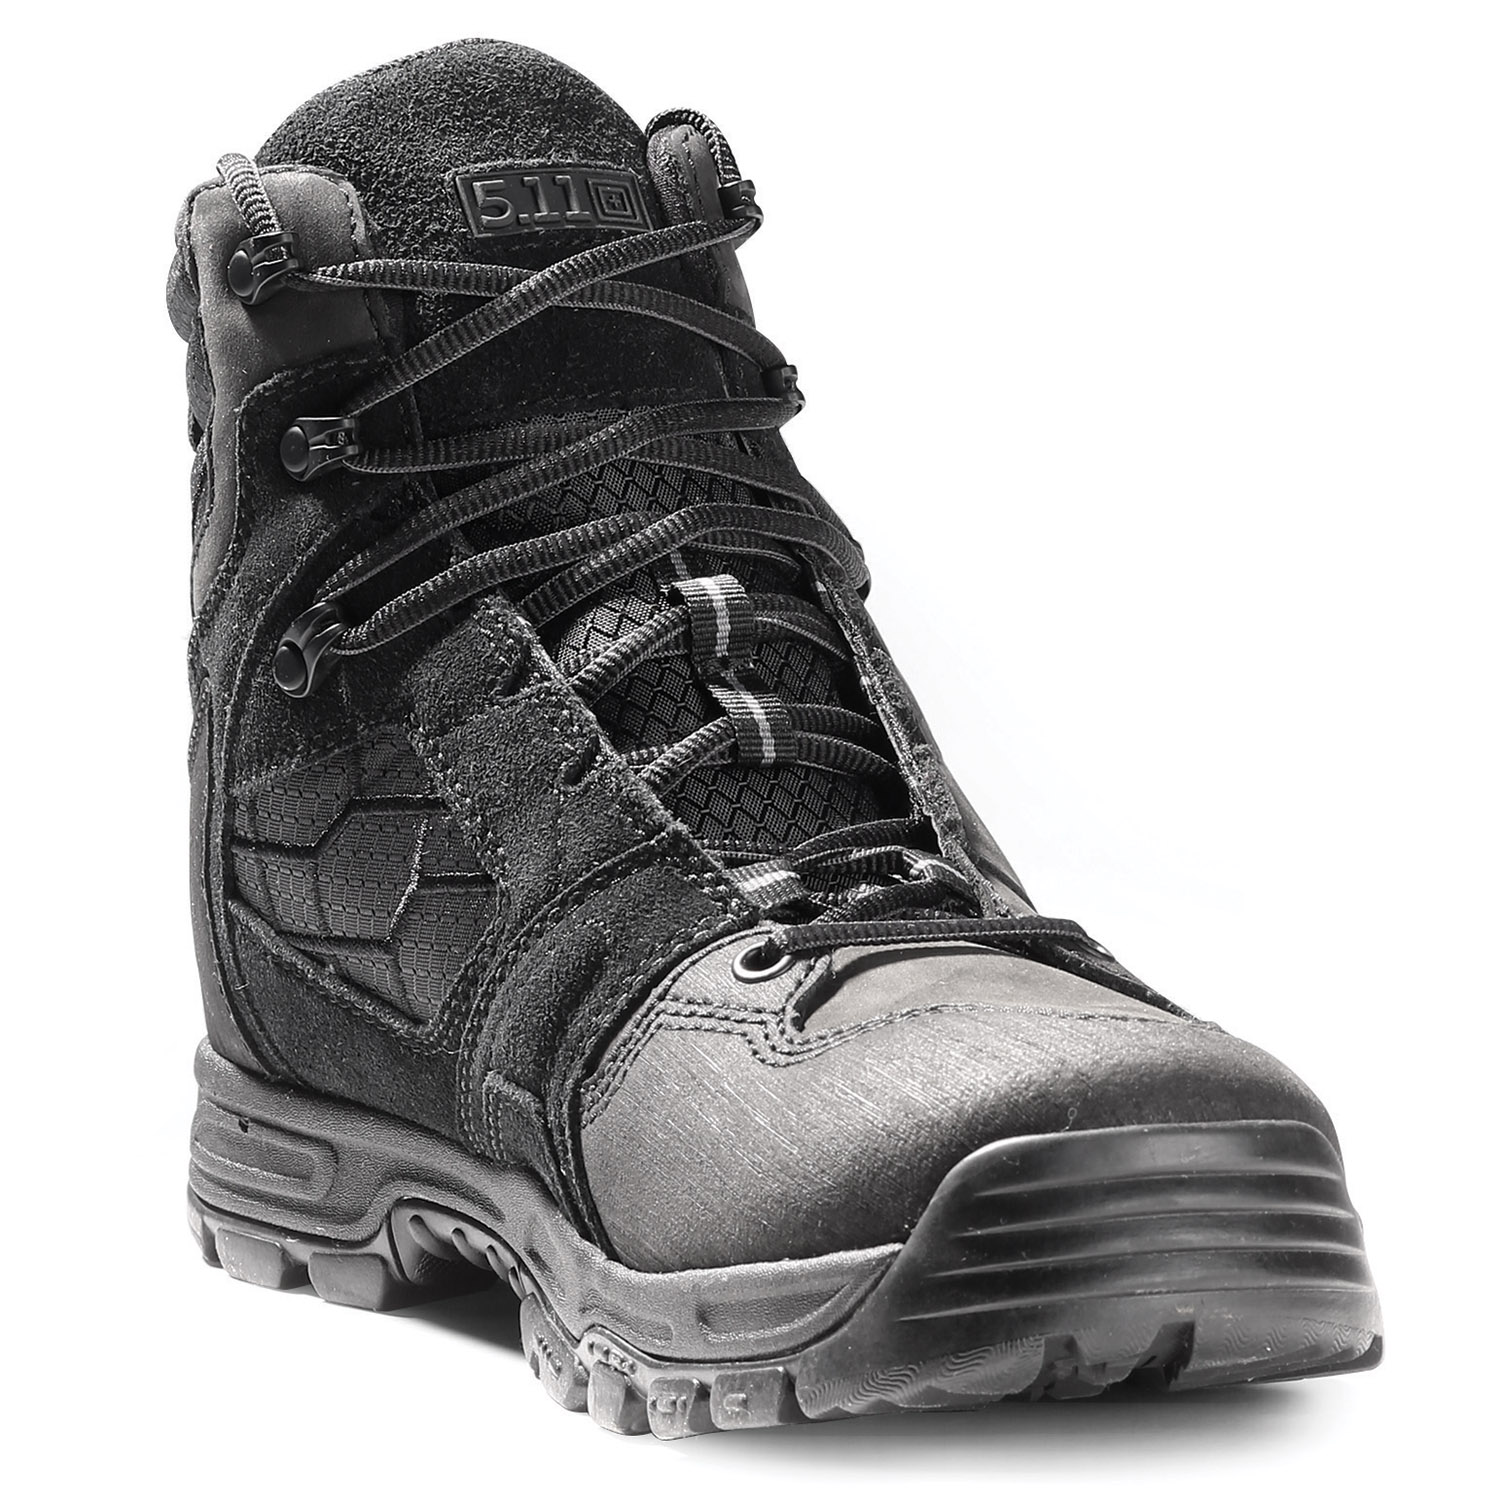 5.11 Tactical XPRT 2.0 Urban Boot